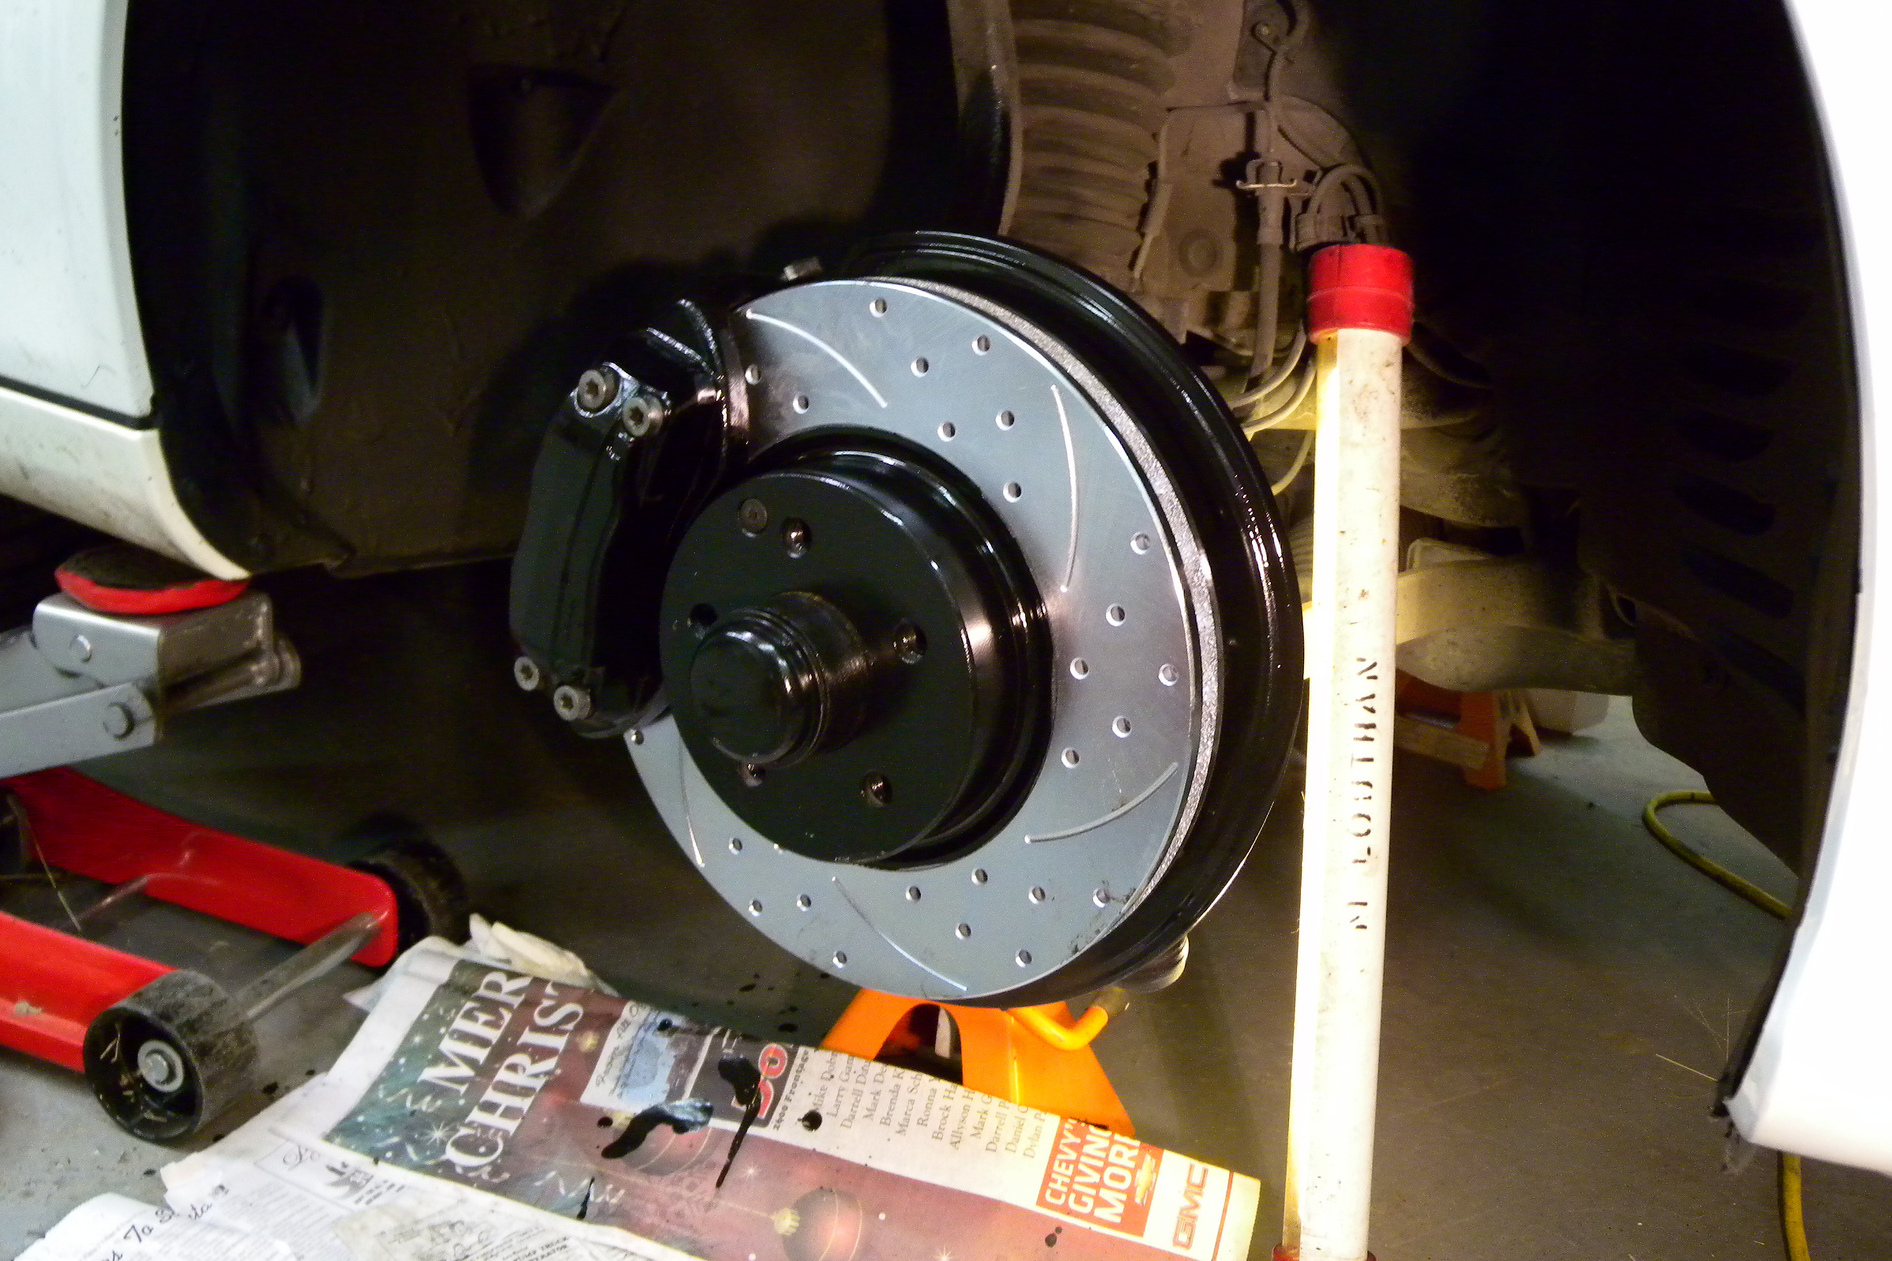 hight resolution of the brake pads on a commuter s car which sees mostly highway driving might last 50 000 miles while brake pads on a sports car could last fewer than